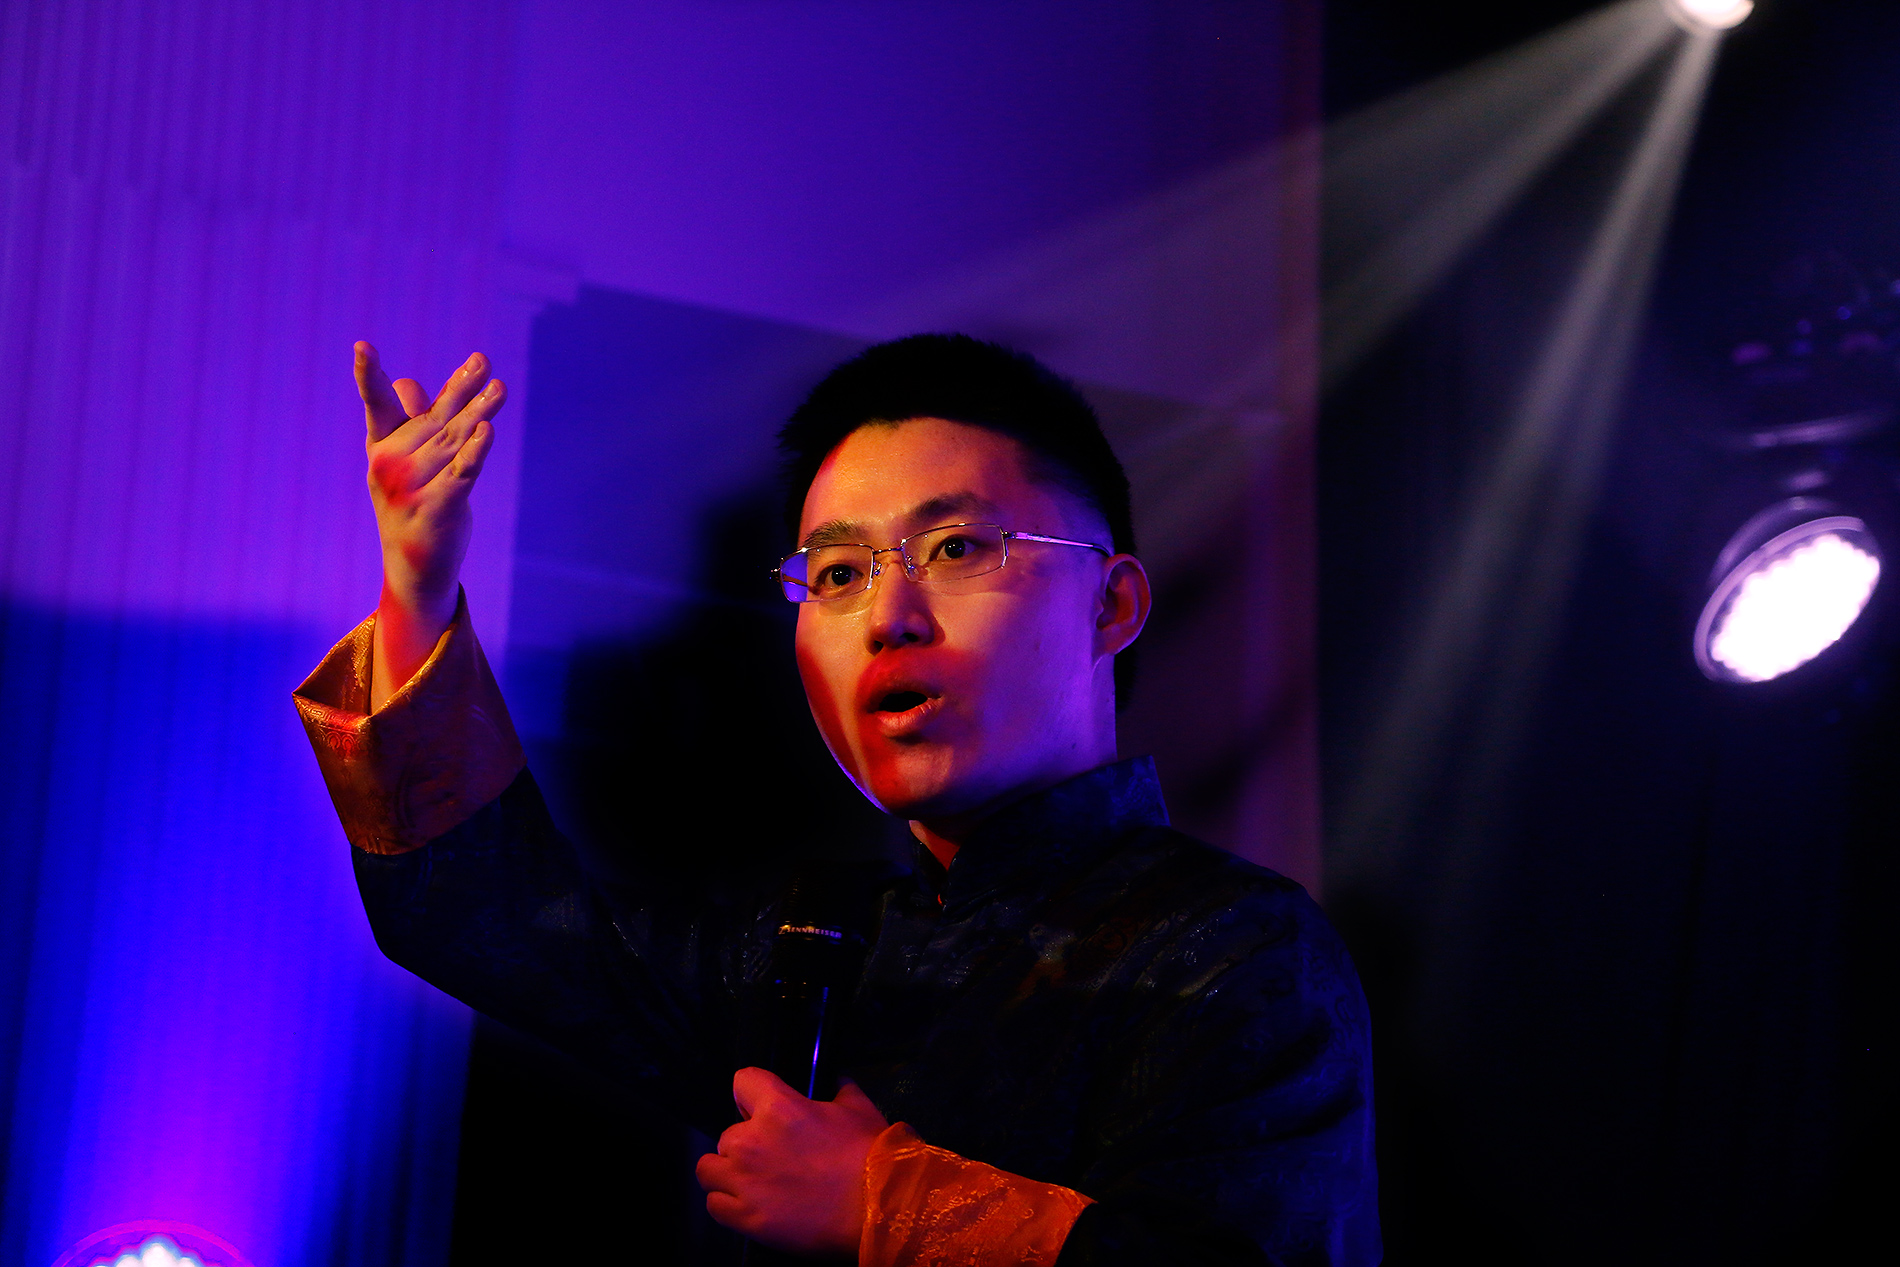 Zeping Meng performs a classical Chinese poem about General Yue Fei. Picture: Tony Öhberg for Finland Today